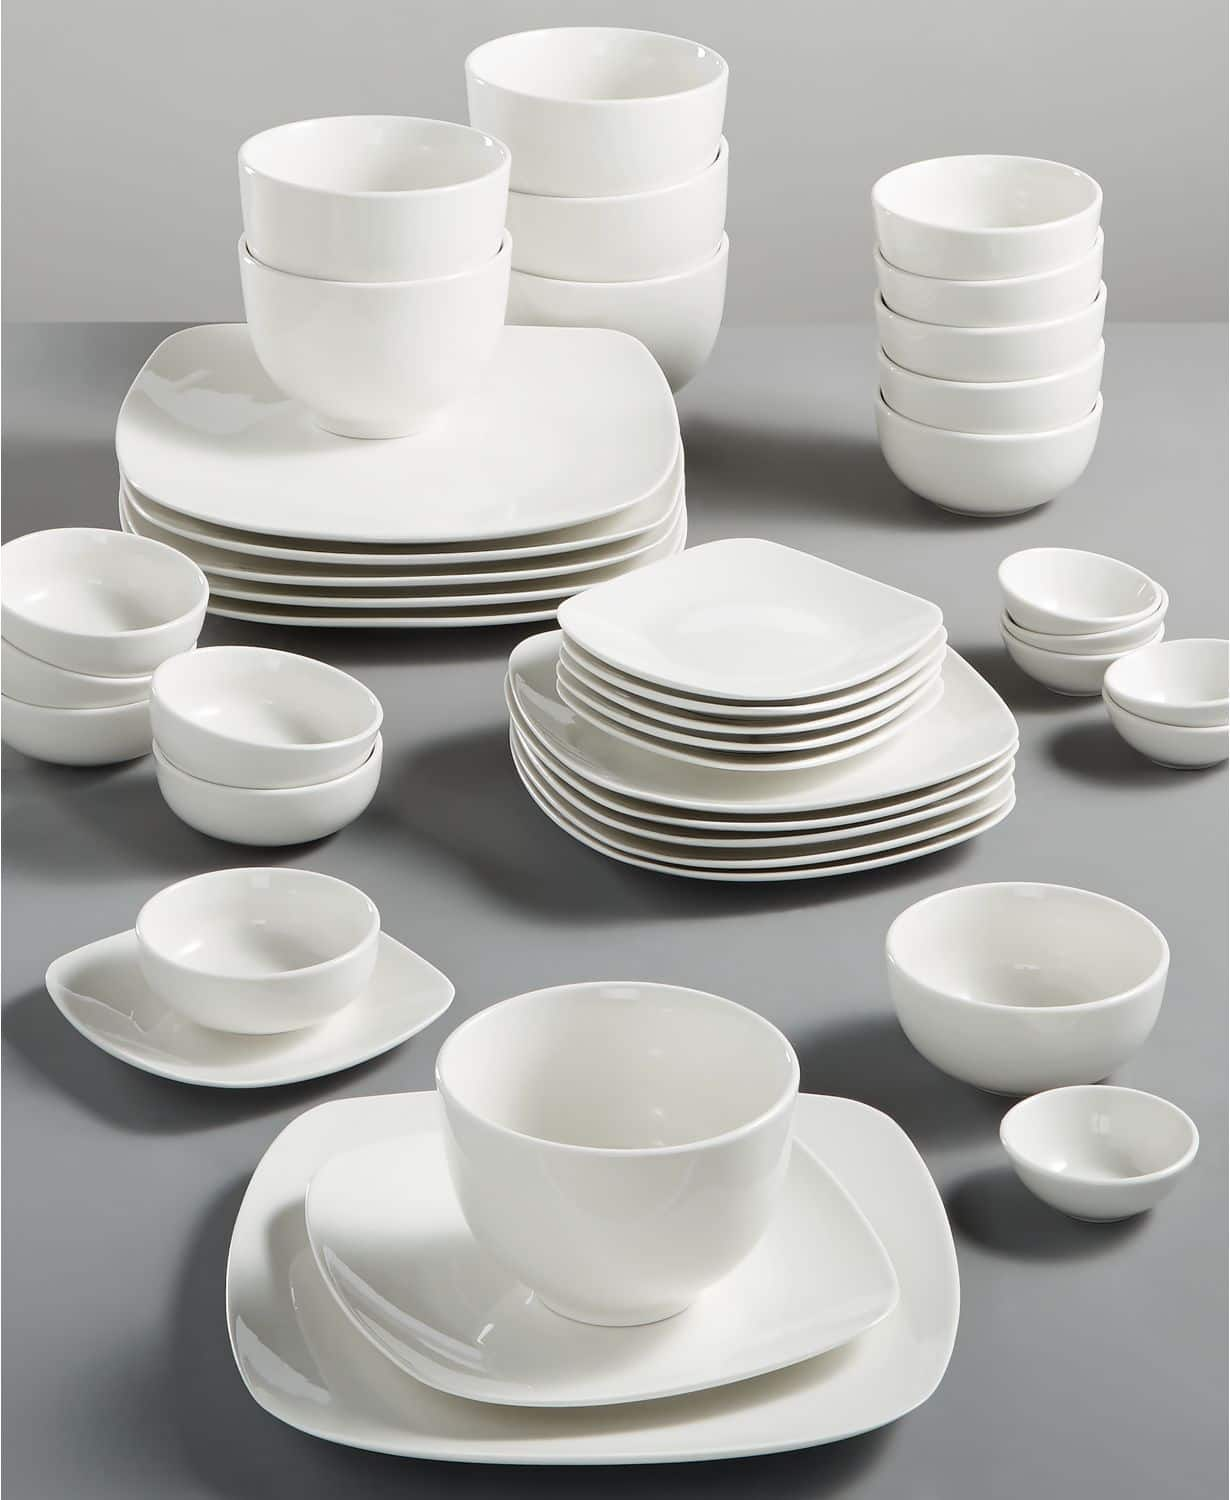 Gibson and White Elements 42 Piece Dinnerware Sets, $39.99 @ Macys